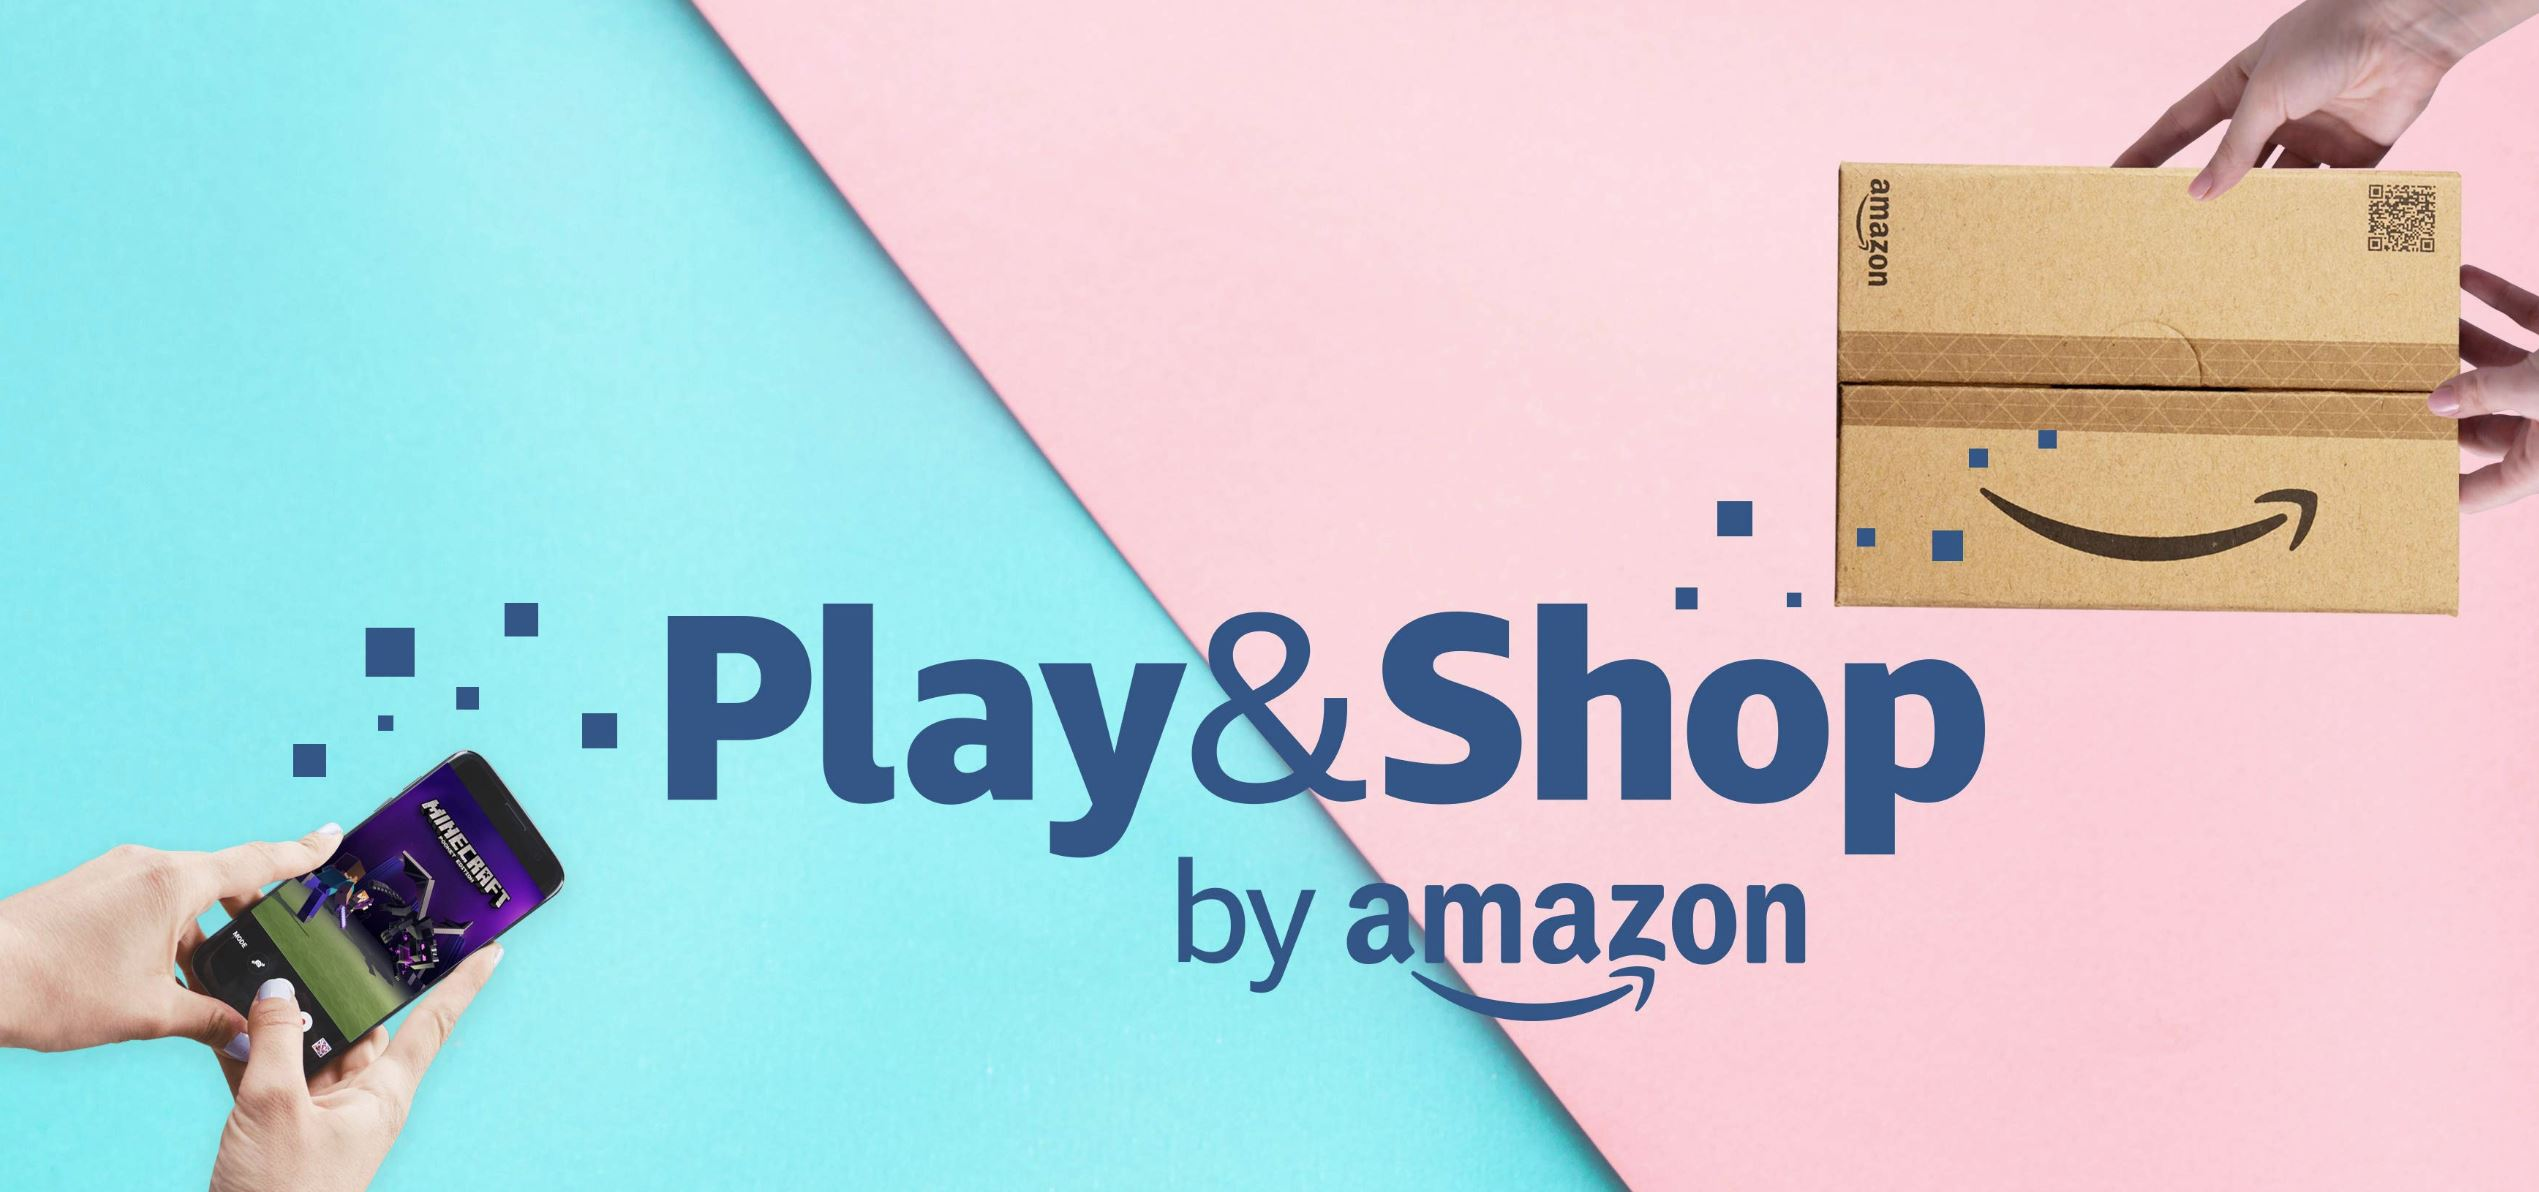 Amazon Play and Shop